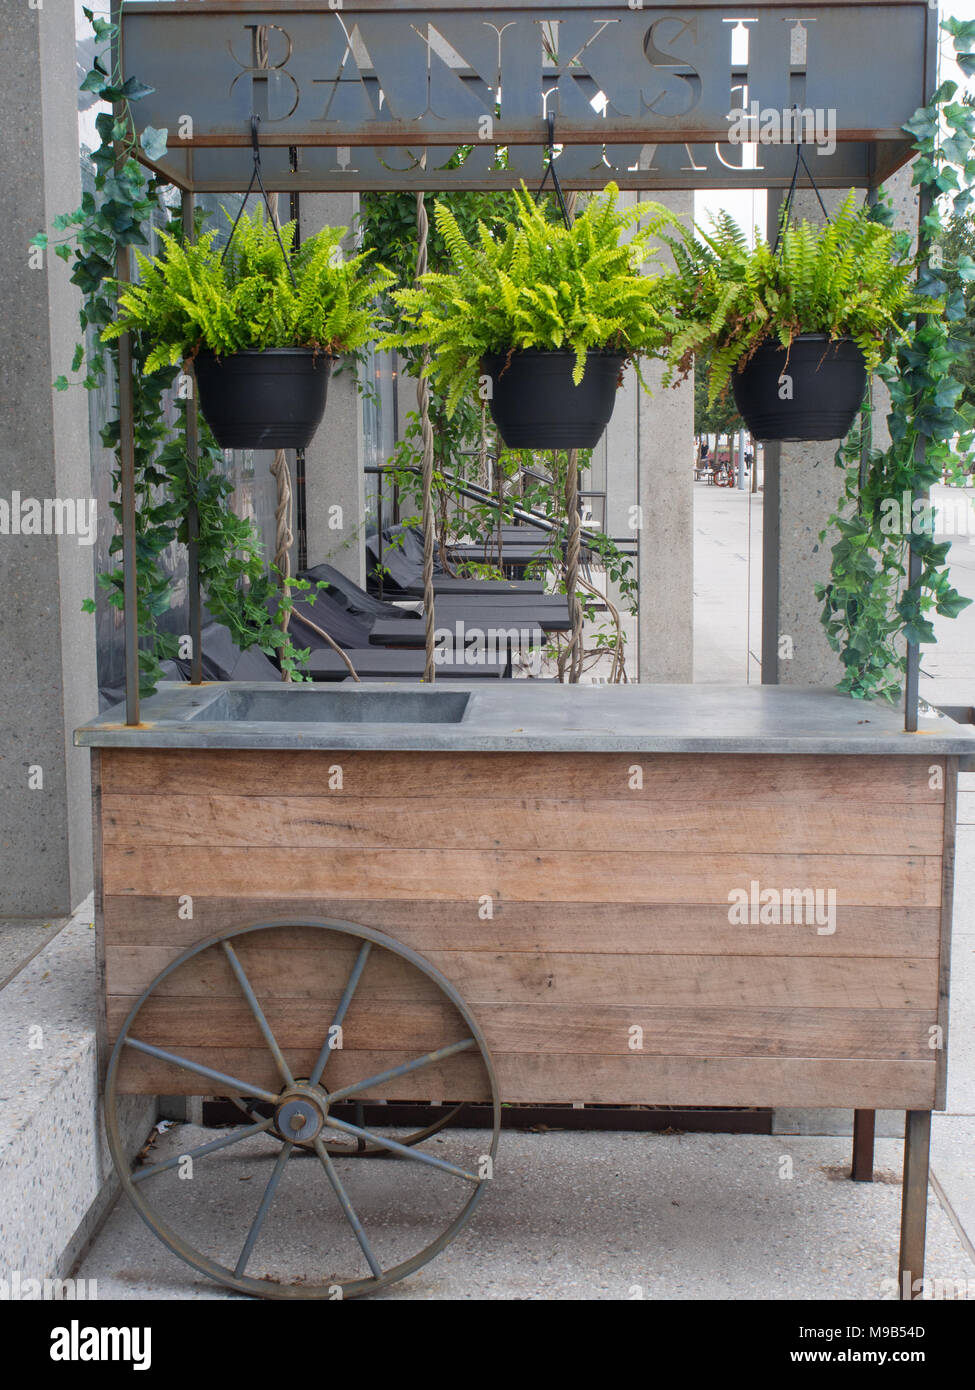 Hanging Pot Plants On A Cart - Stock Image